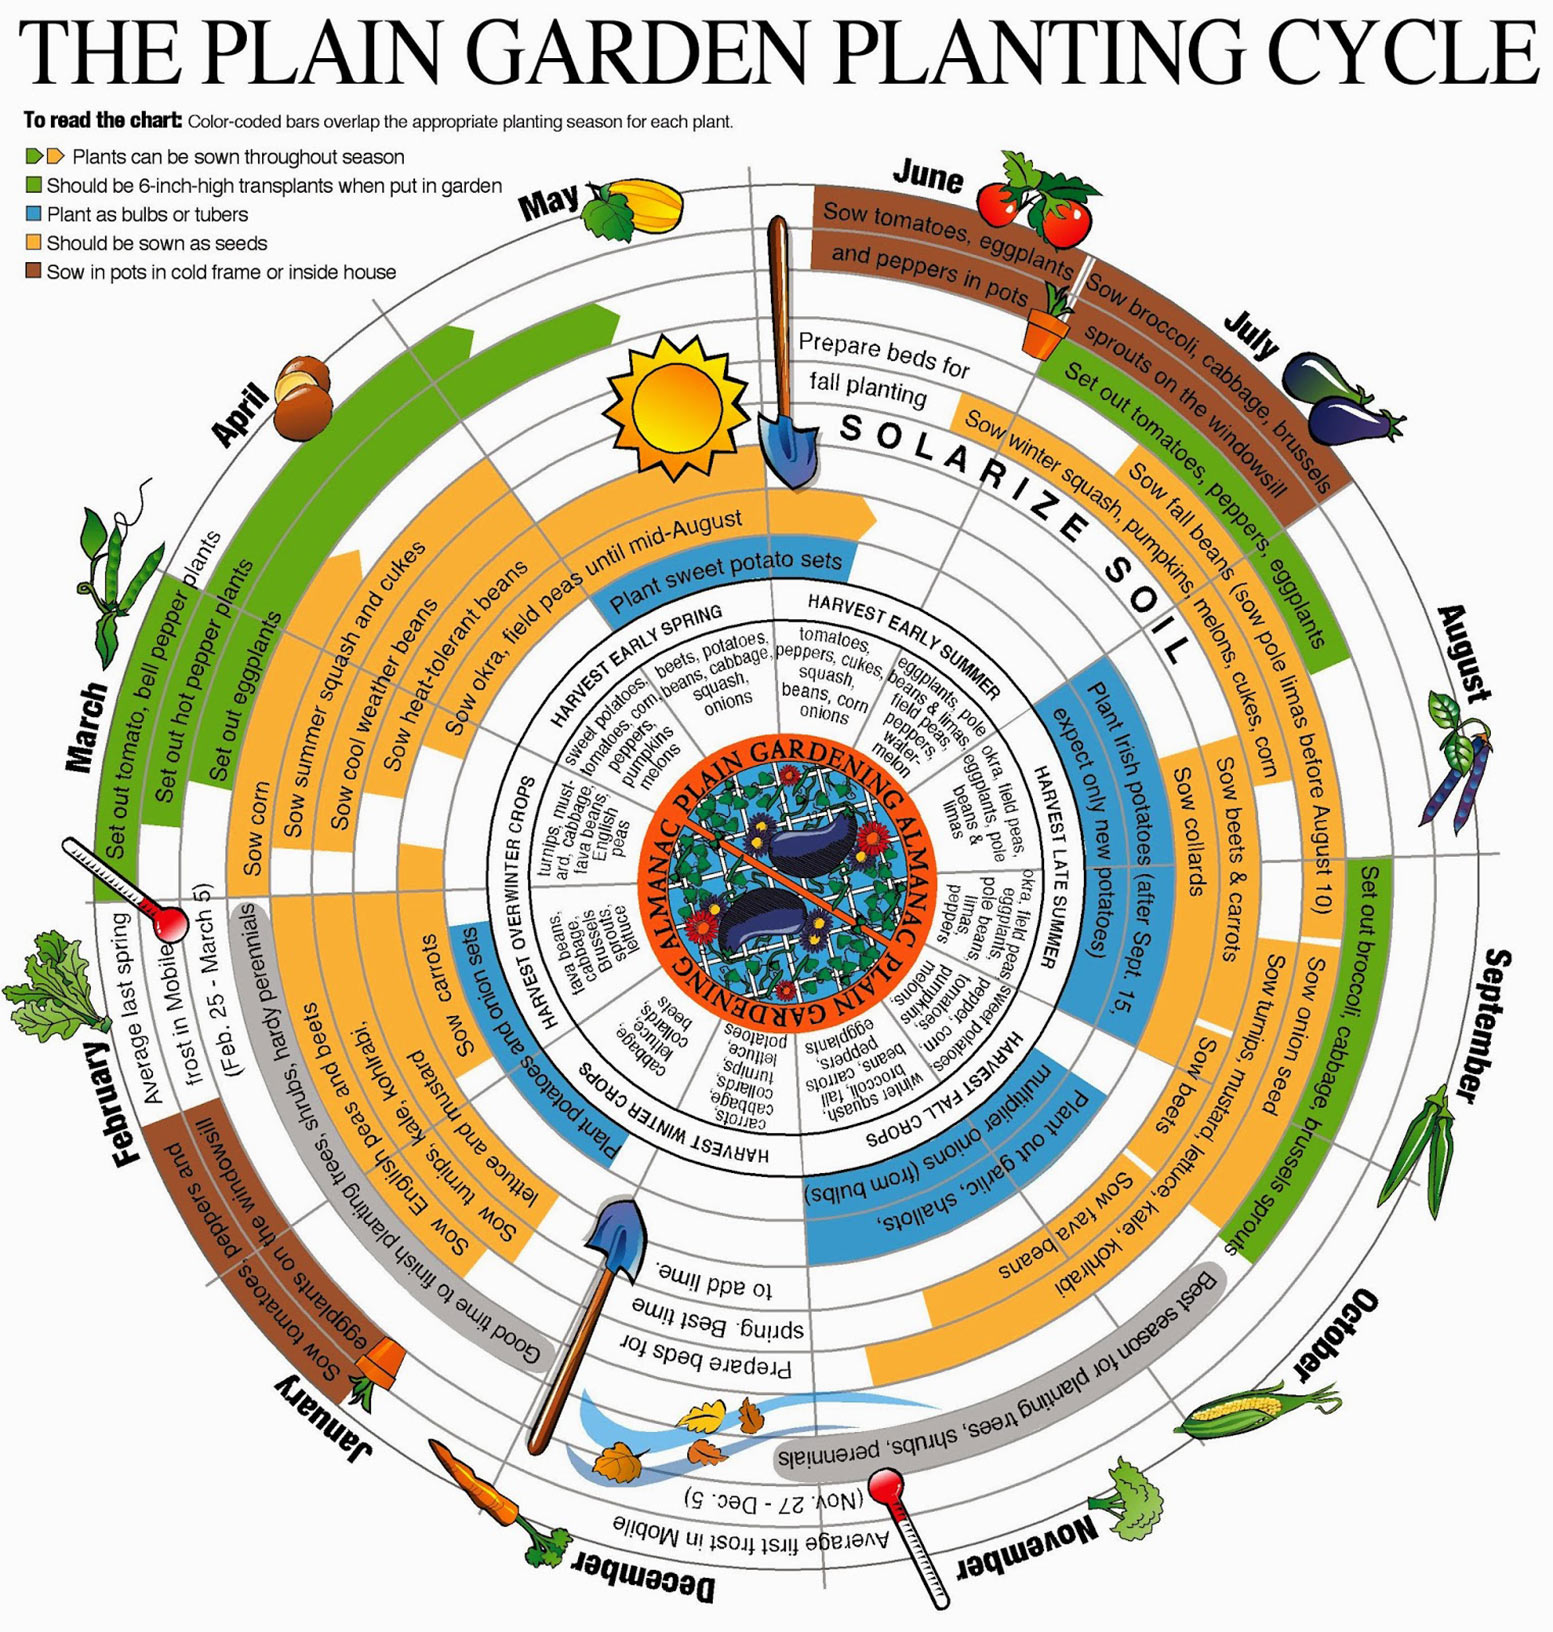 The Plain Garden Planting Cycle [Infographic]